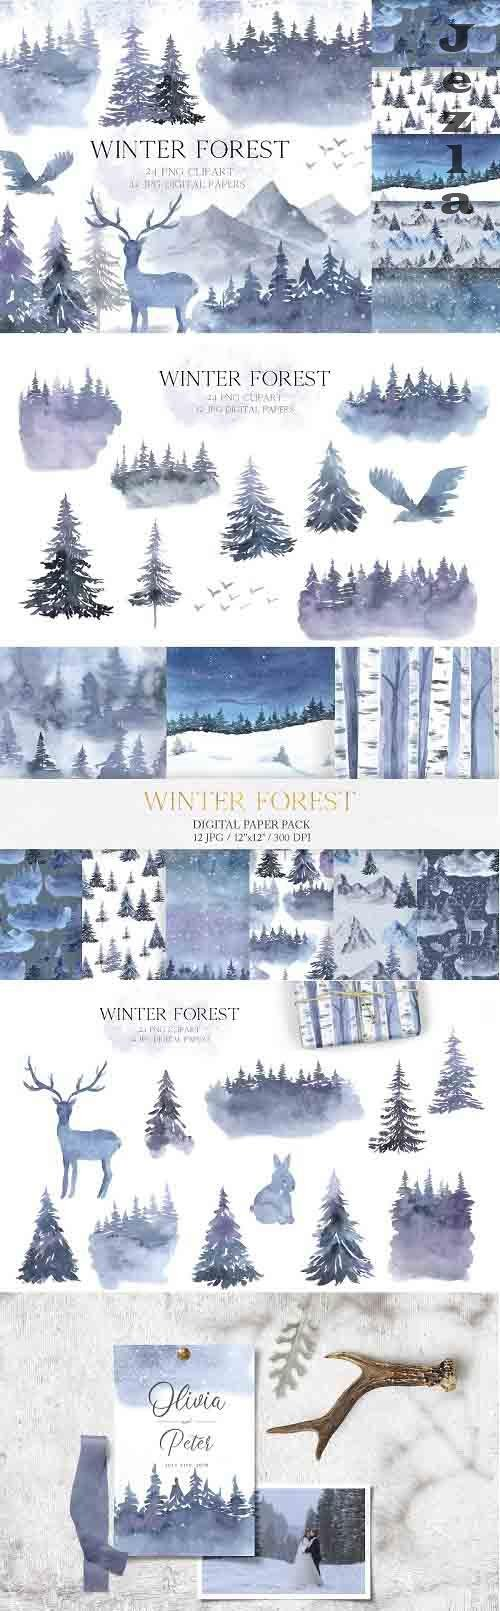 Watercolor Winter Forest Set - 5633566